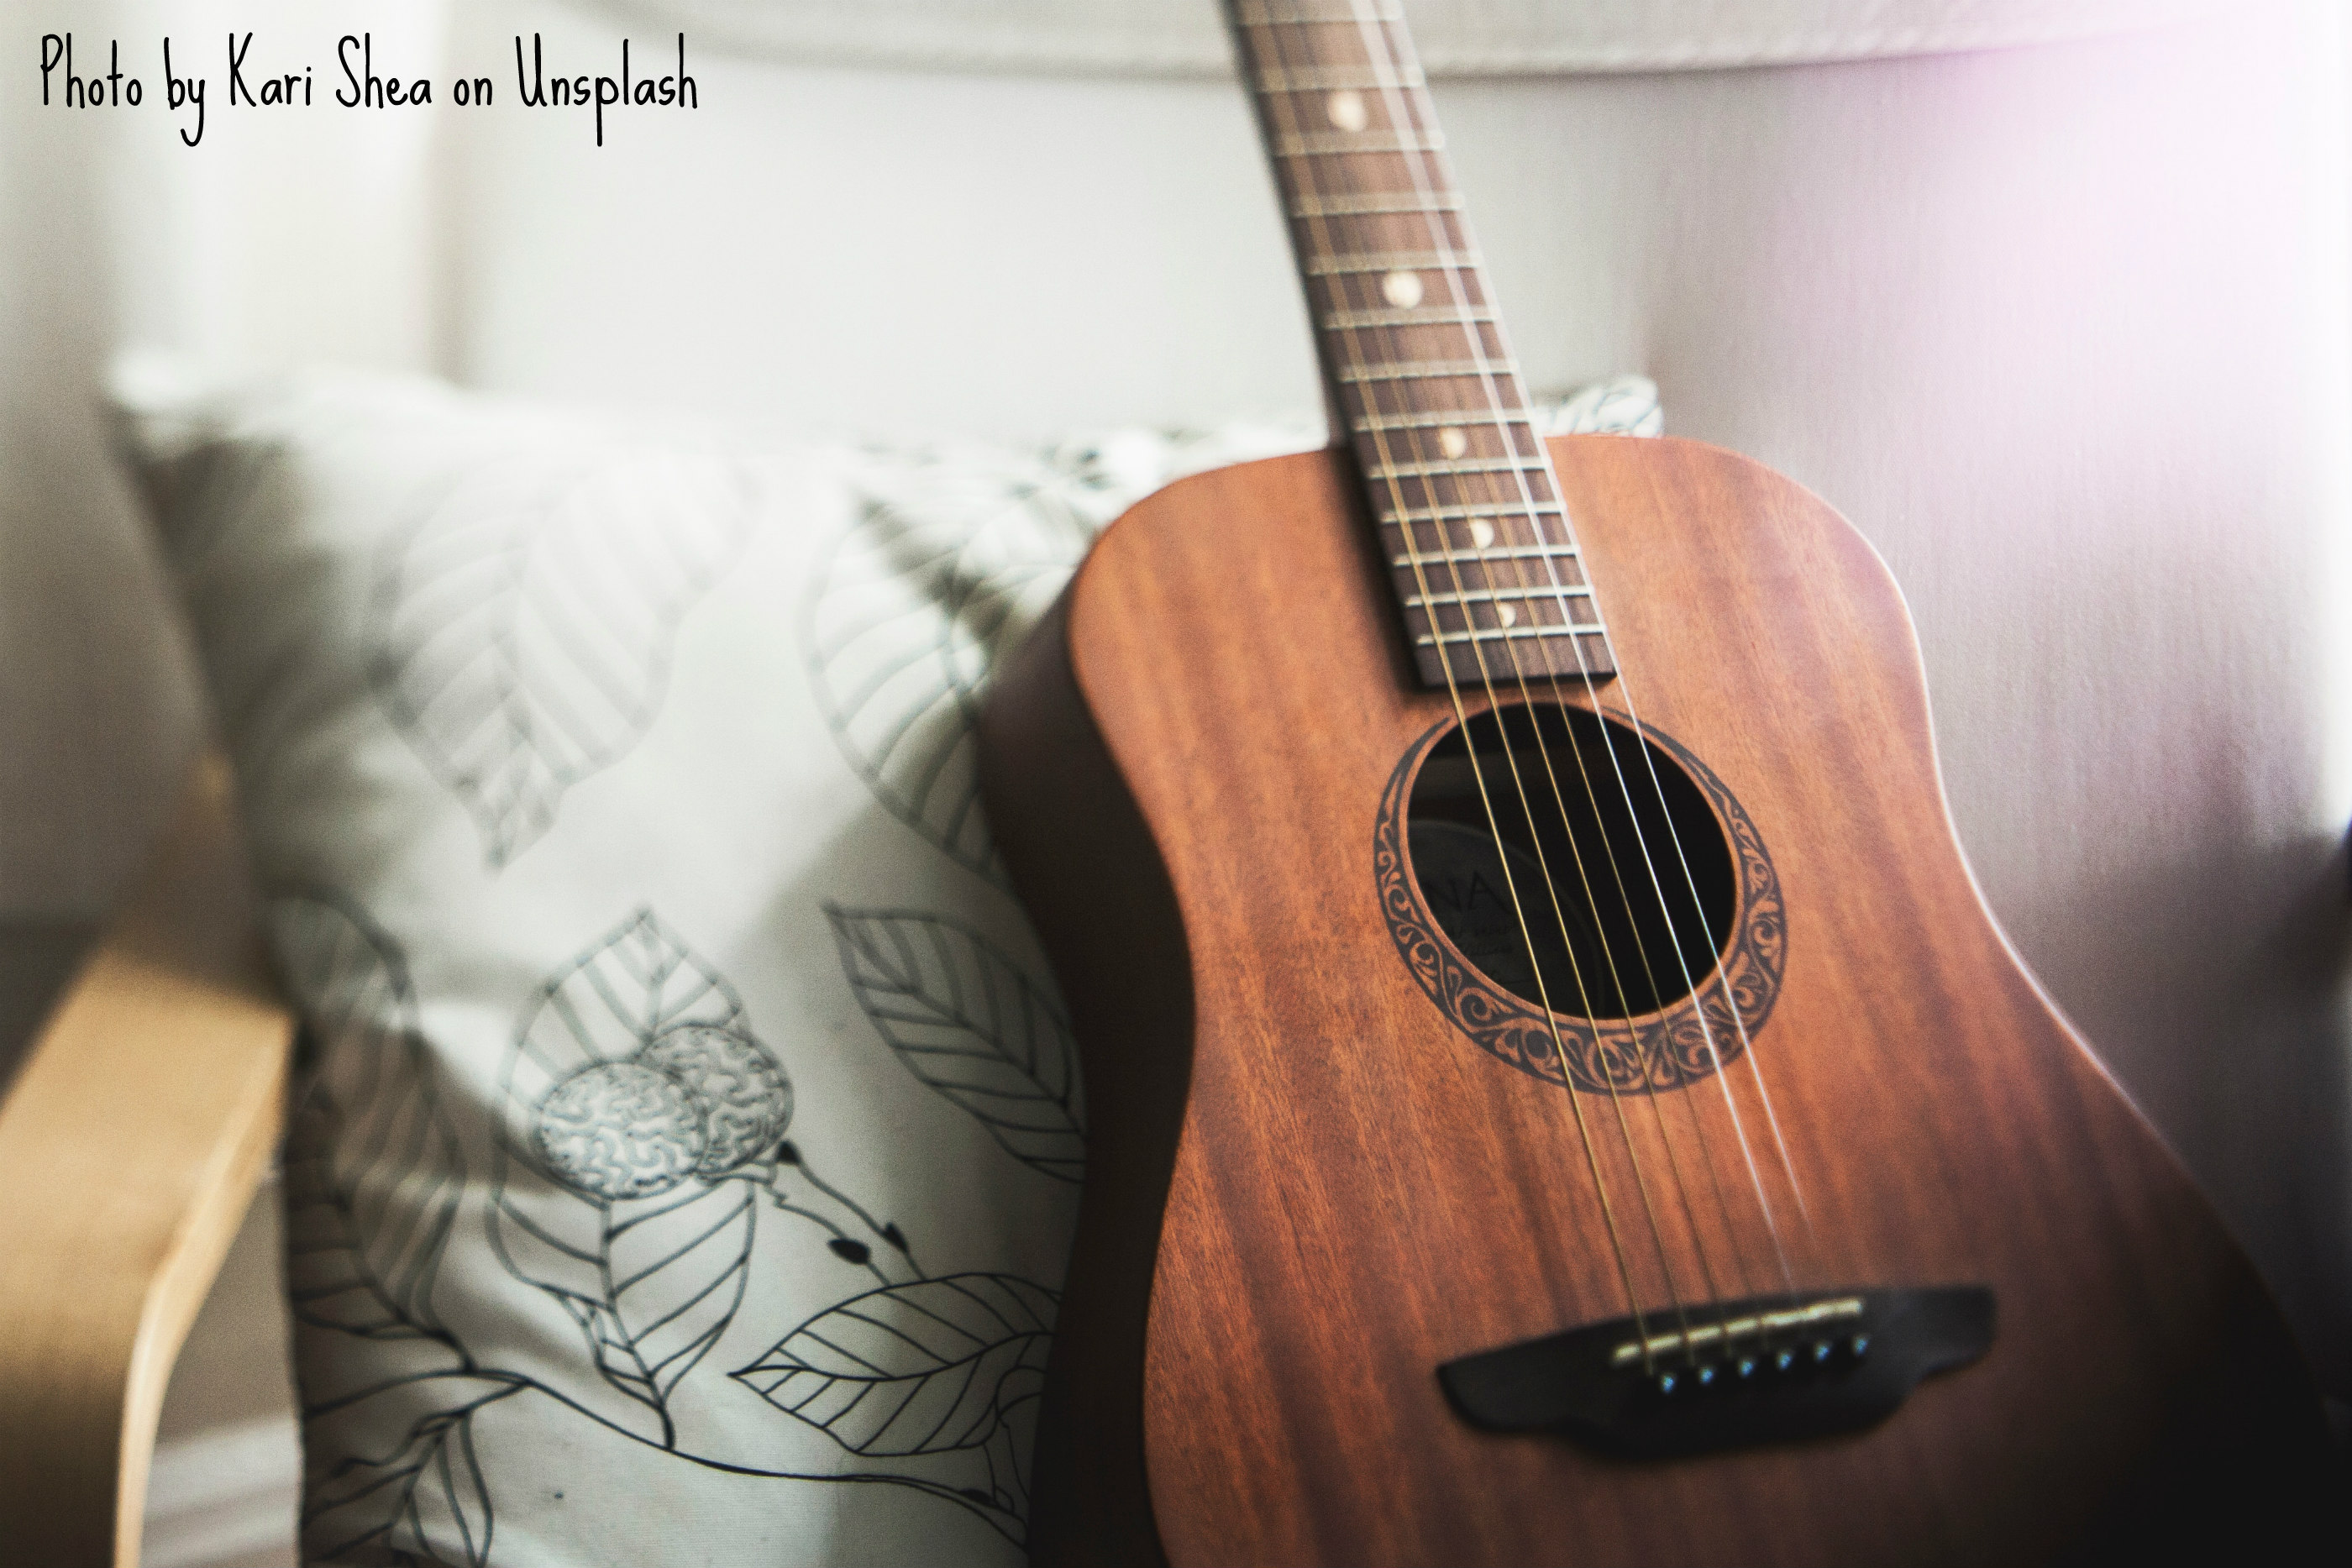 A six-stringed accoustic guitar is propped up against a white throw pillow that has leaves embroidered all over in black. A black crescent cups the sound hole, its fill pattern appearing to have a Celtic design. The crescent complements the mahogany body.